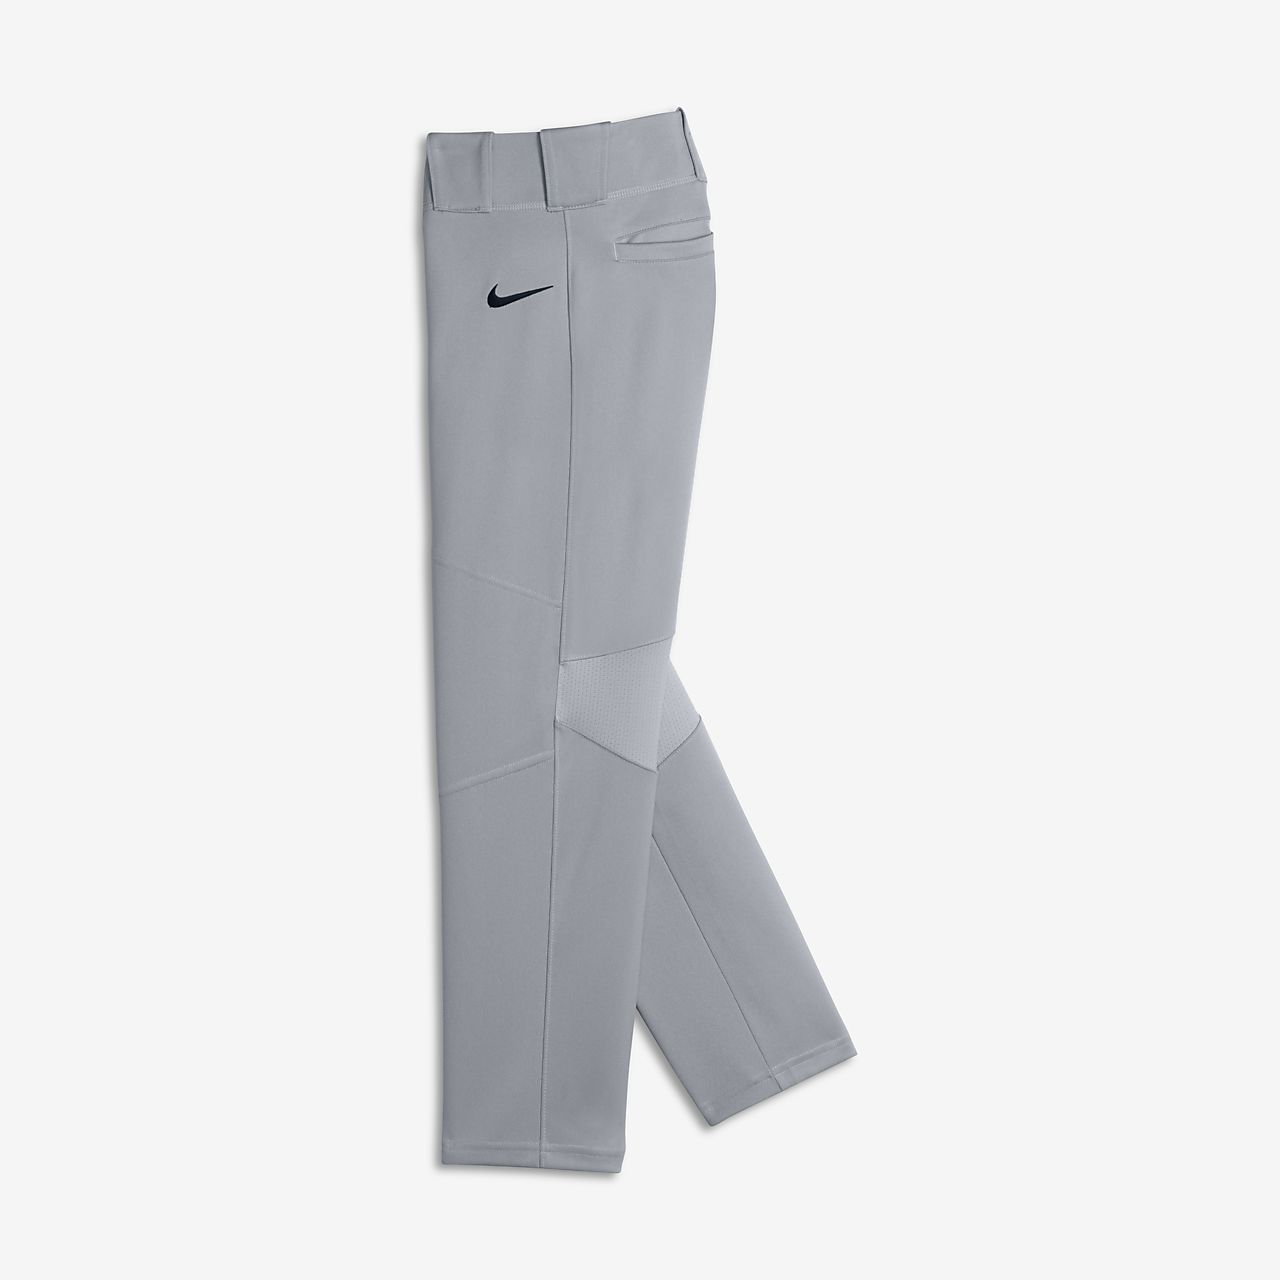 Tracksuits & Sets Clothes, Shoes & Accessories Mens Nike Tracksuit Bottoms Xxl Highly Polished